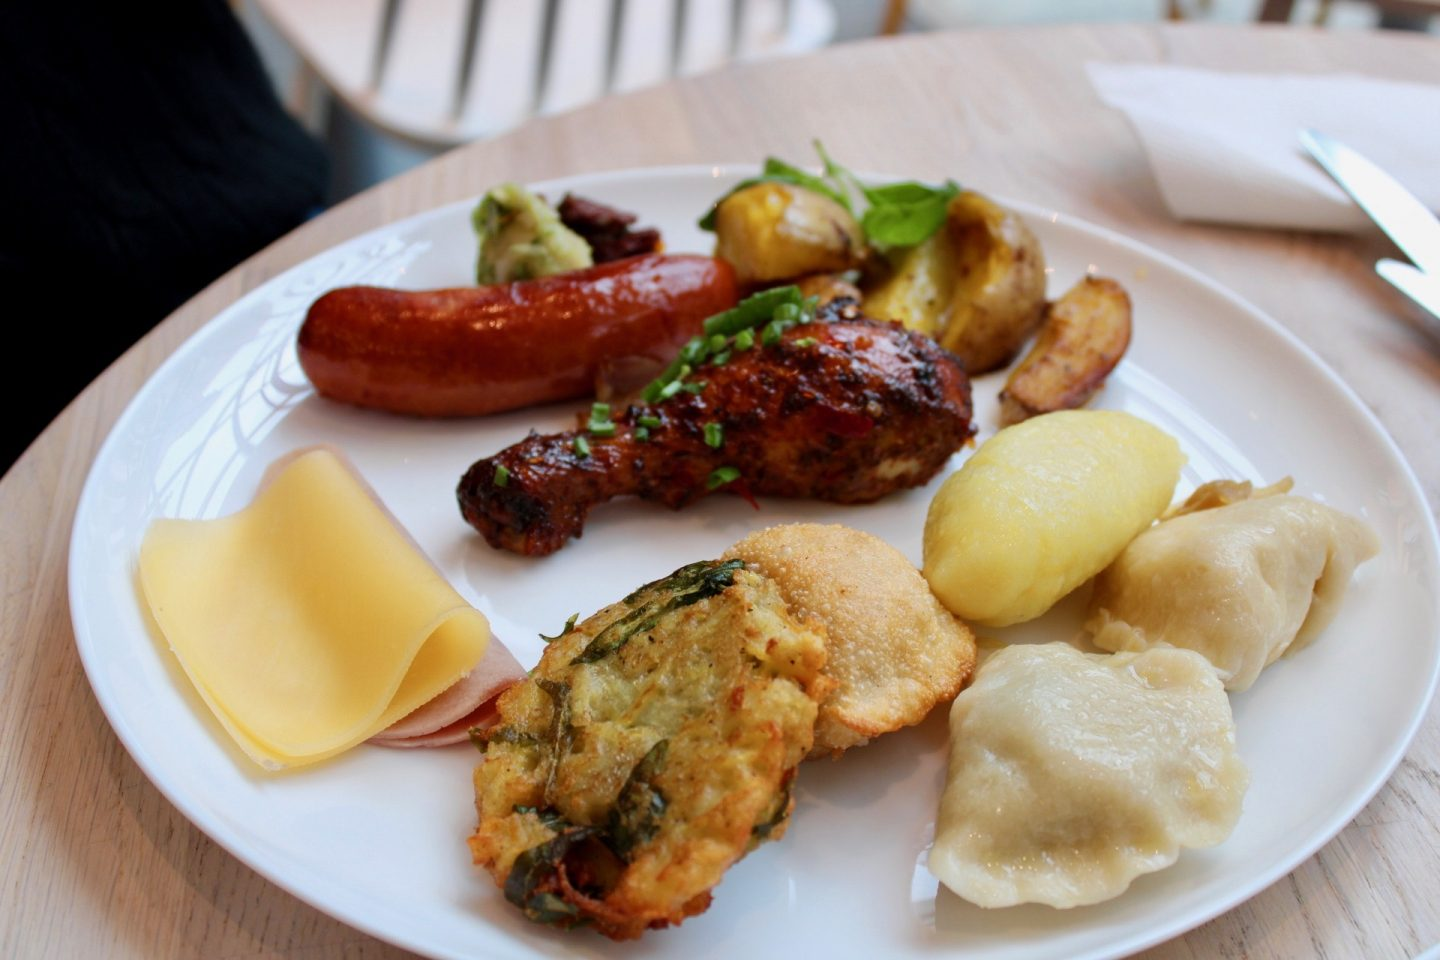 best bars restaurants in wroclaw - lepione. A large white plate showing a random selection of dumpling, chicken wing, potatoes and sausage